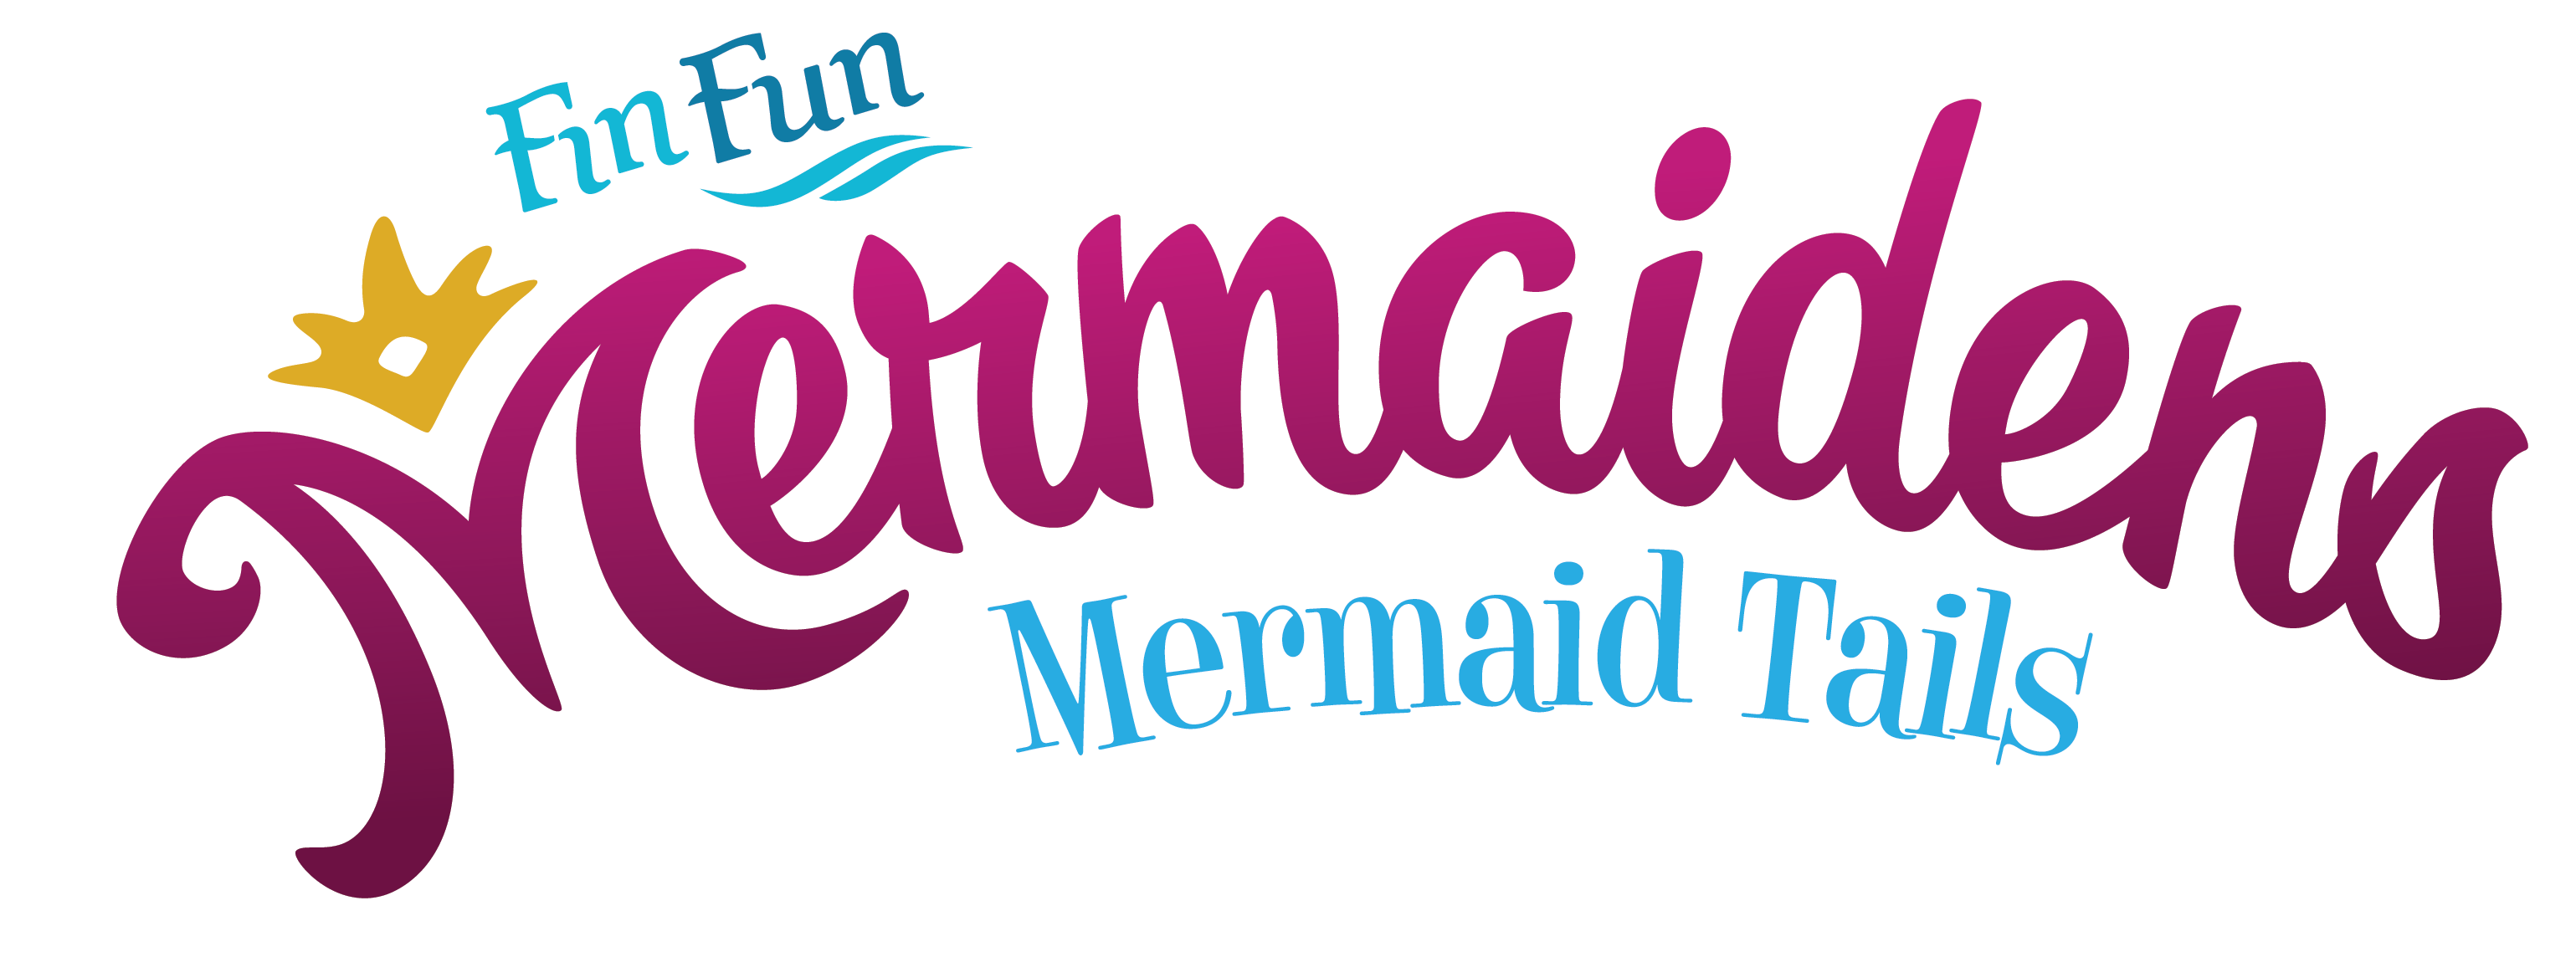 fin fun mermaidens logo, mermaid tails uk stockist